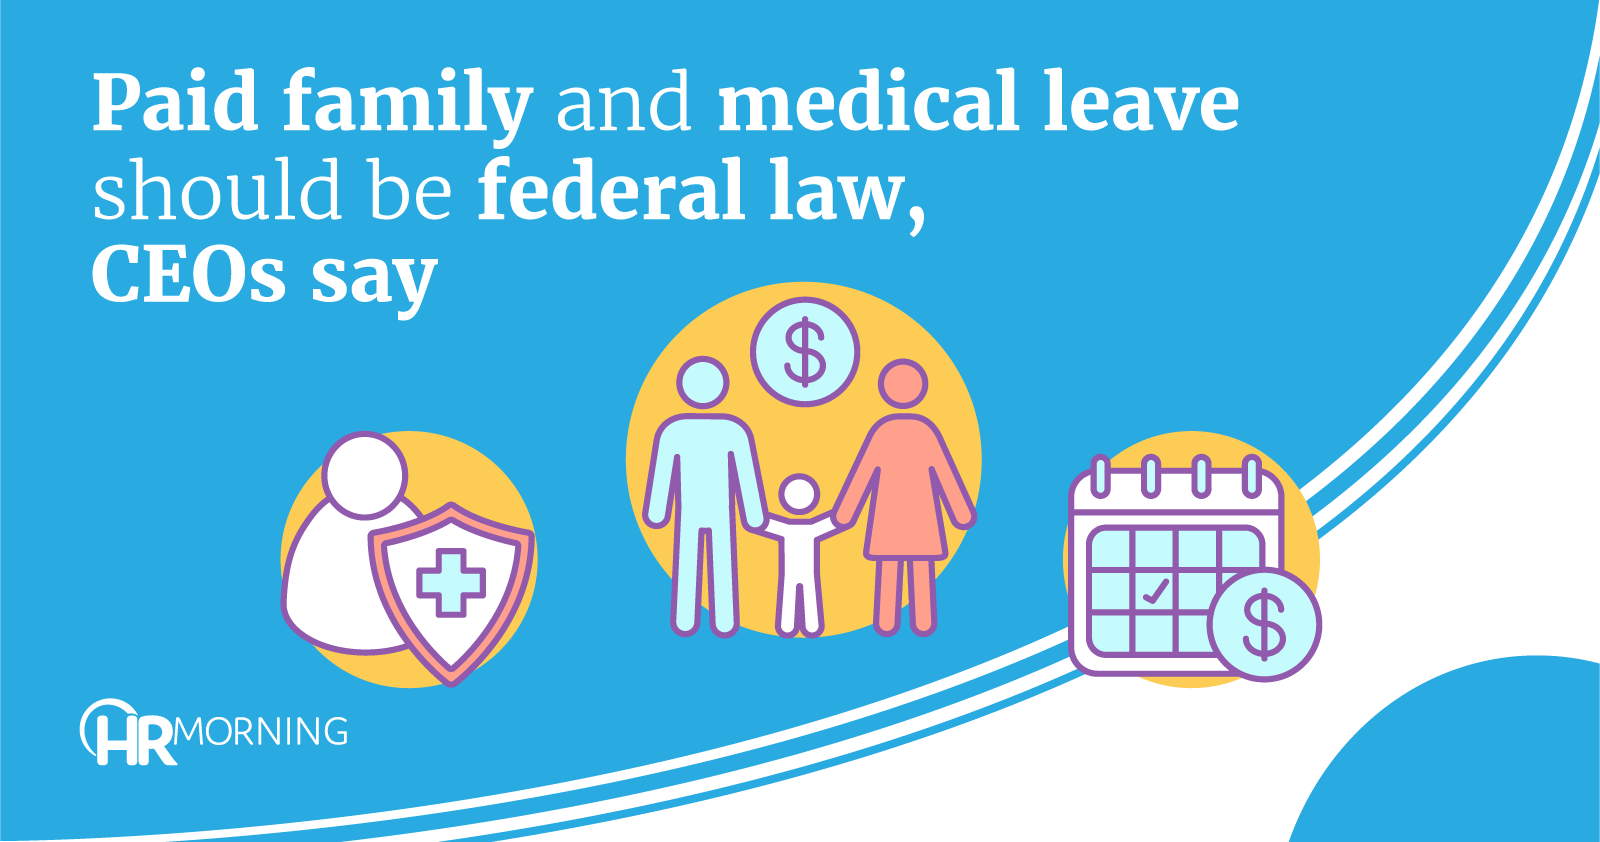 Paid family and medical leave should be federal law